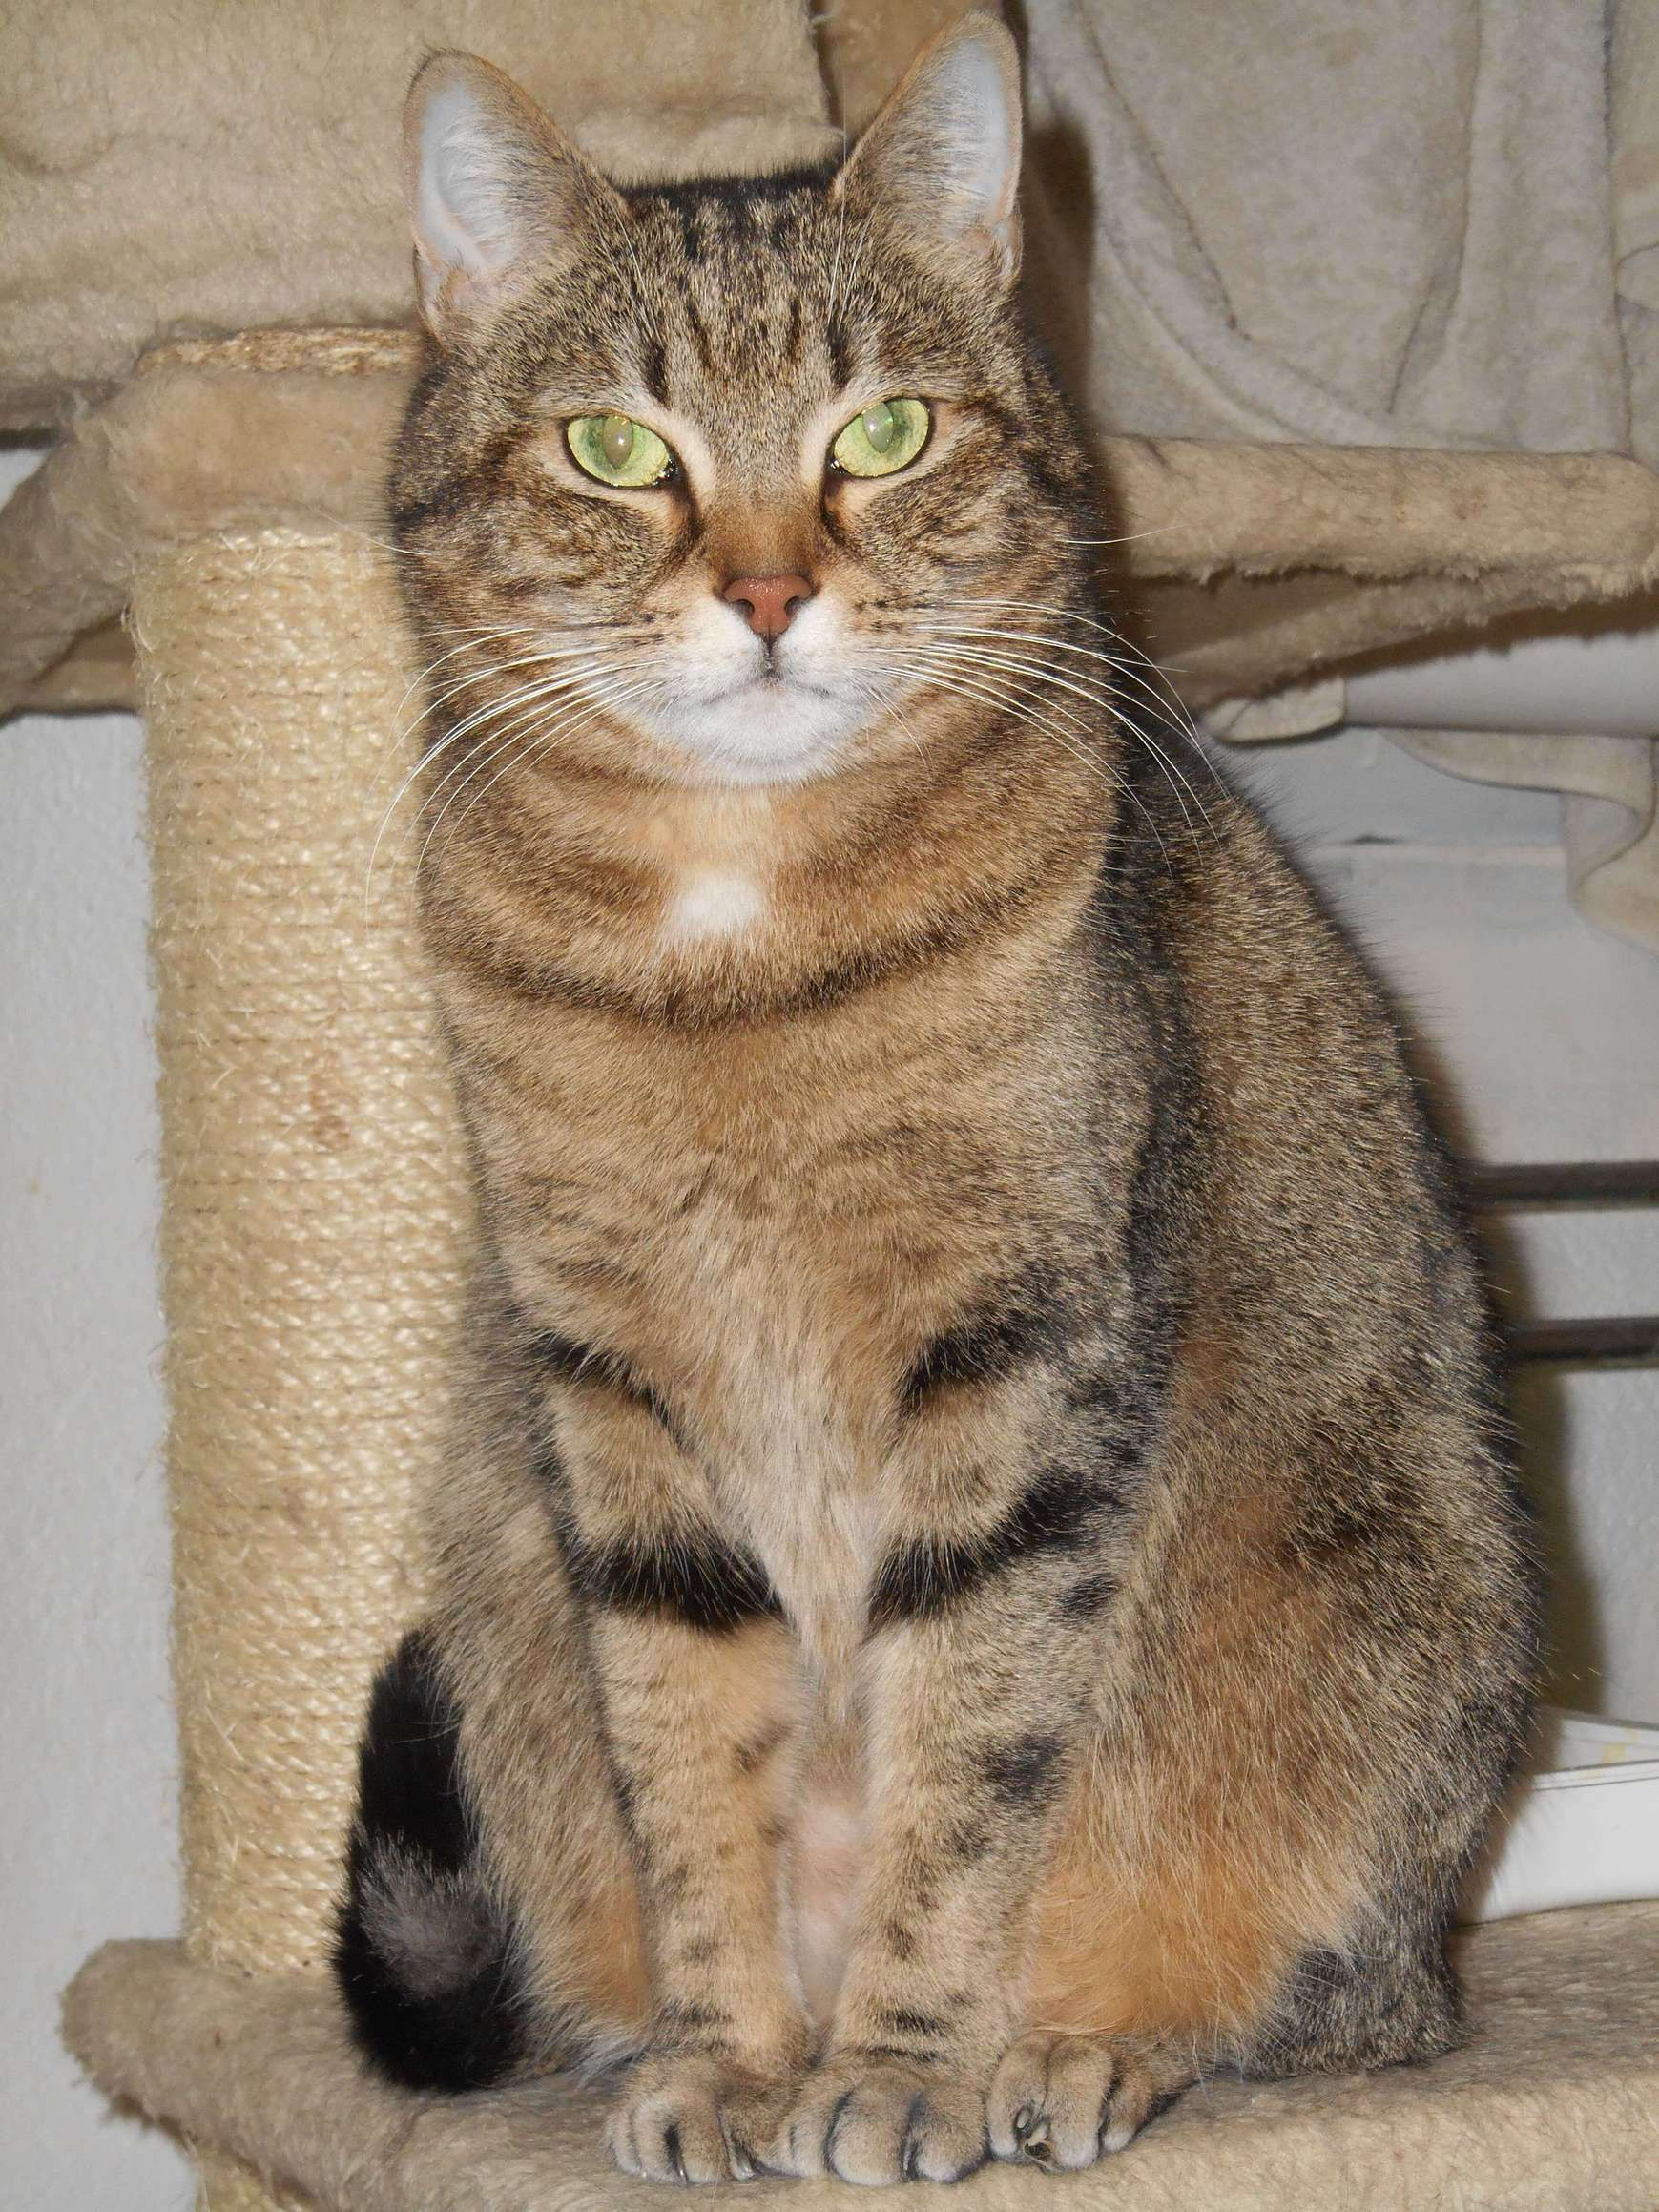 Maddy - Adopter un chat – Ile de France